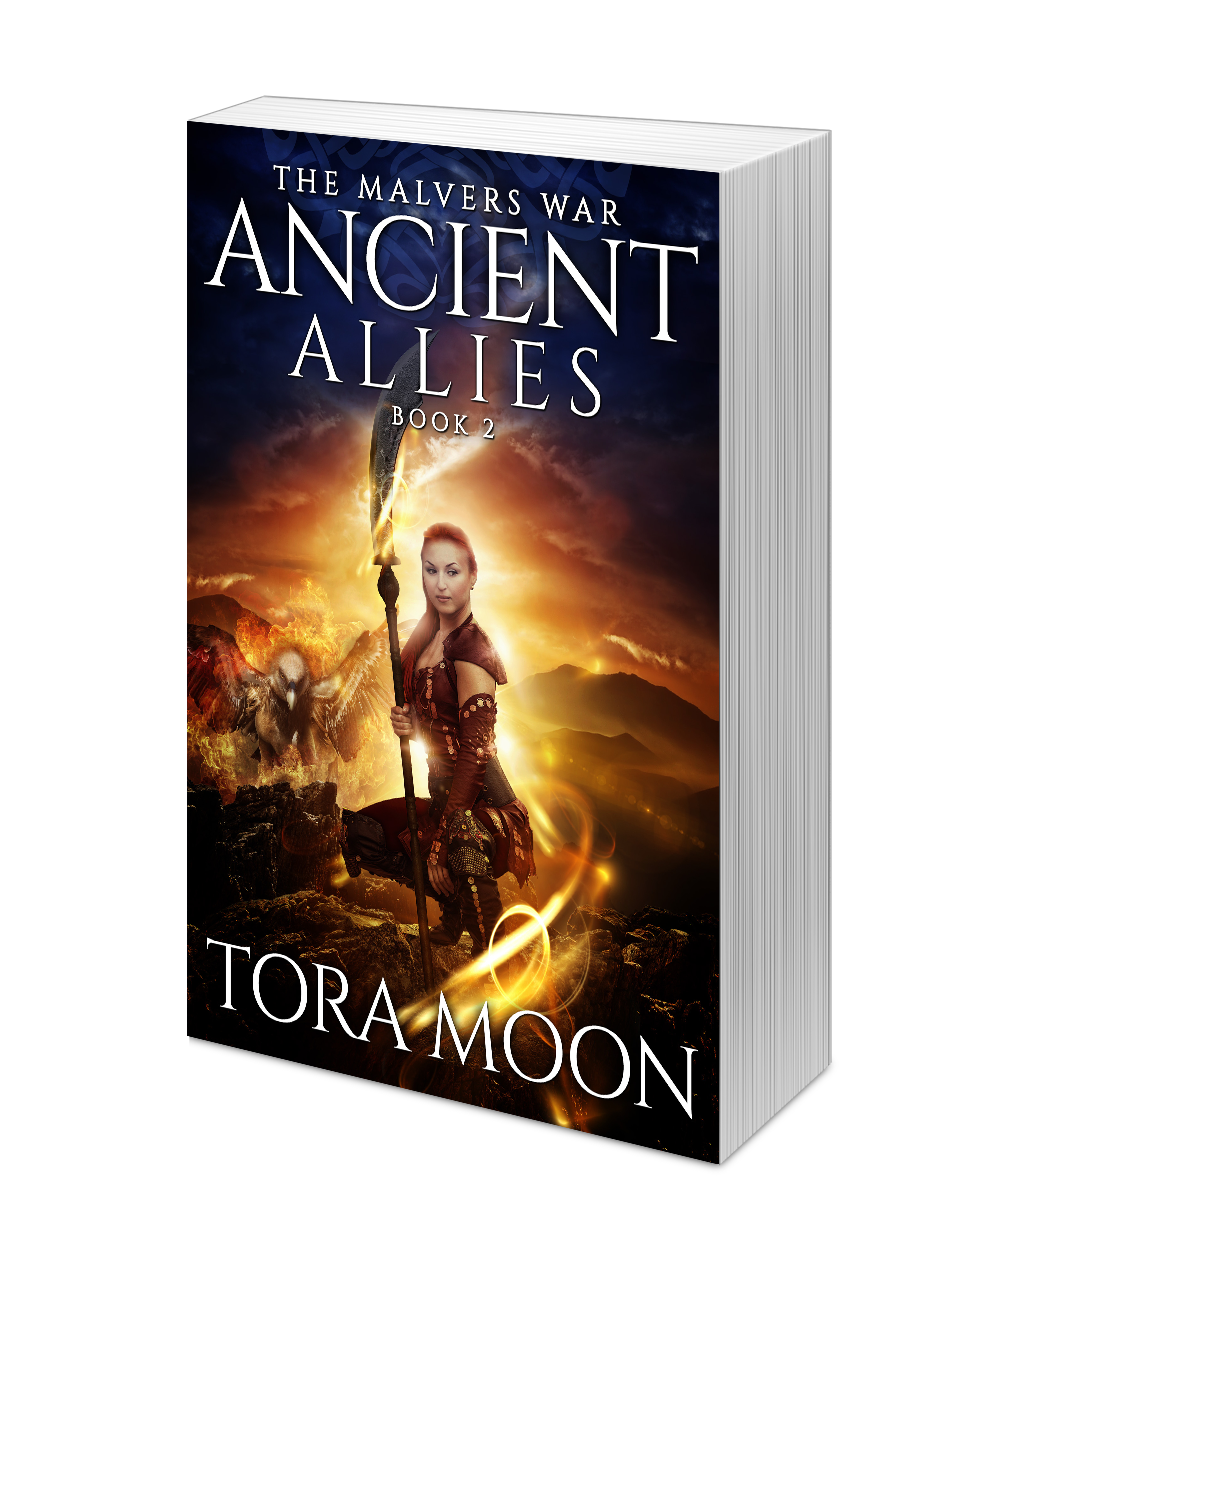 Ancient Allies by Tora Moon